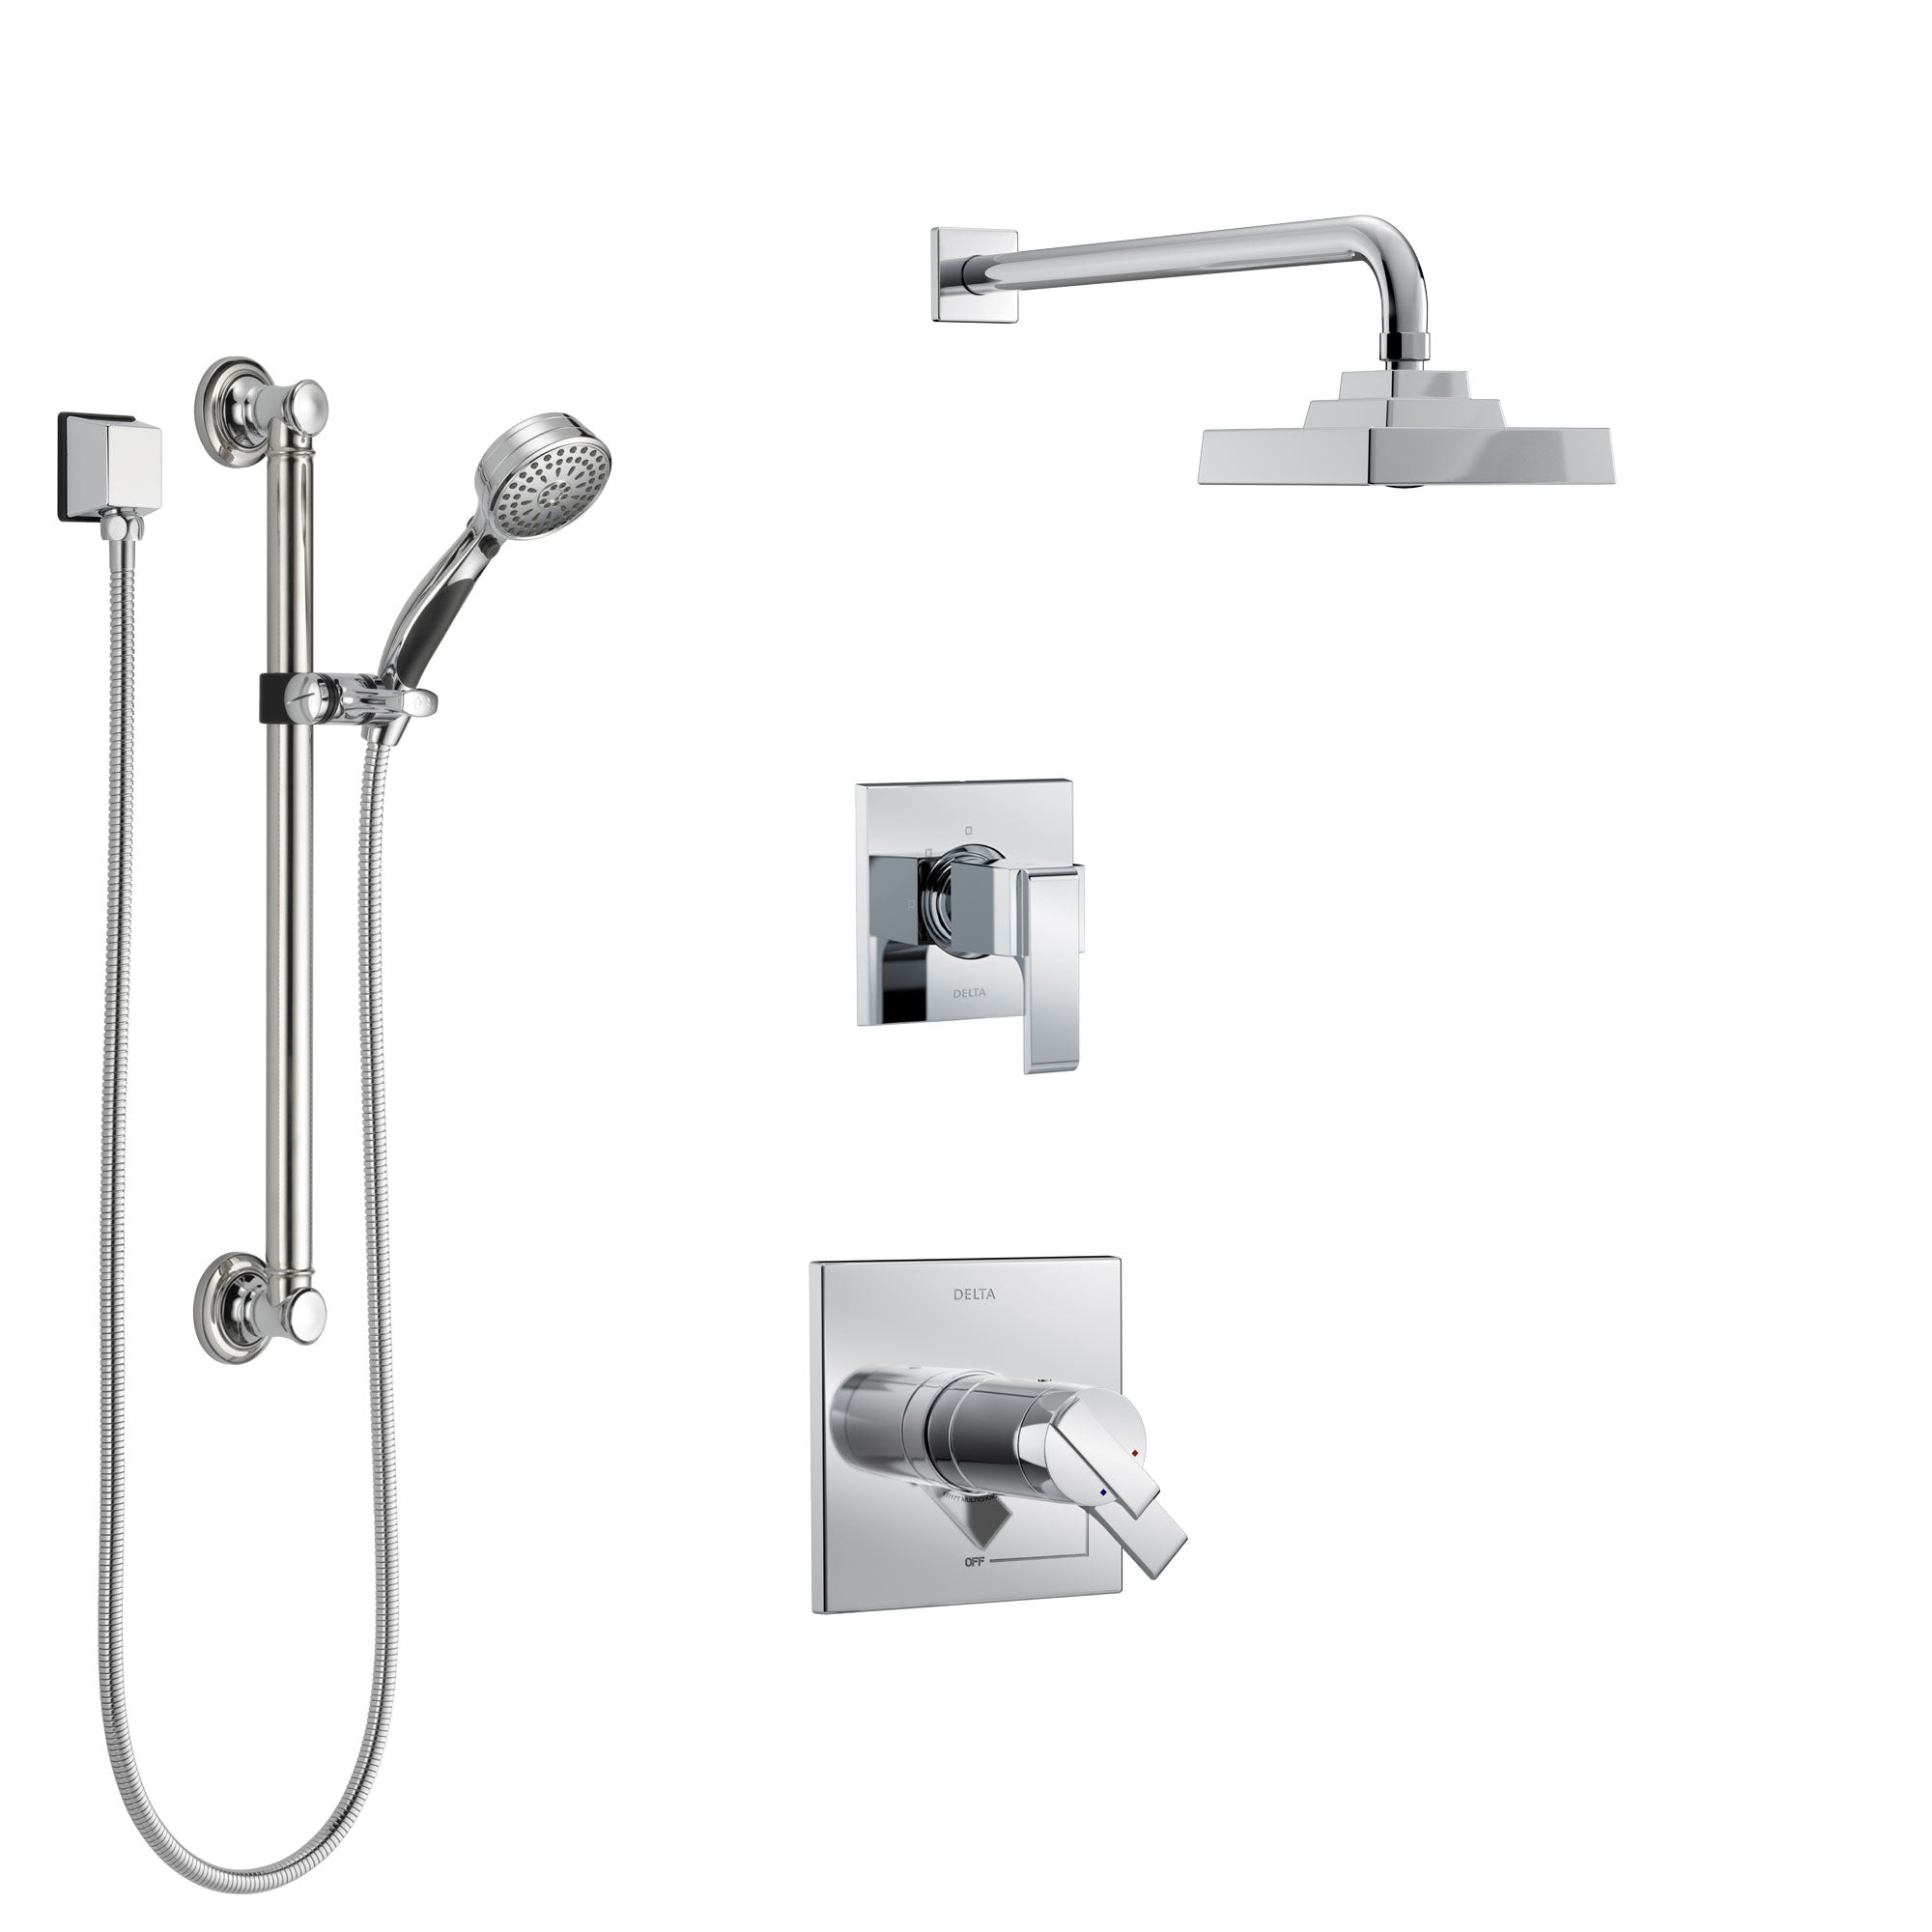 Delta Ara Chrome Finish Shower System with Dual Thermostatic Control Handle, 3-Setting Diverter, Showerhead, and Hand Shower with Grab Bar SS17T26713